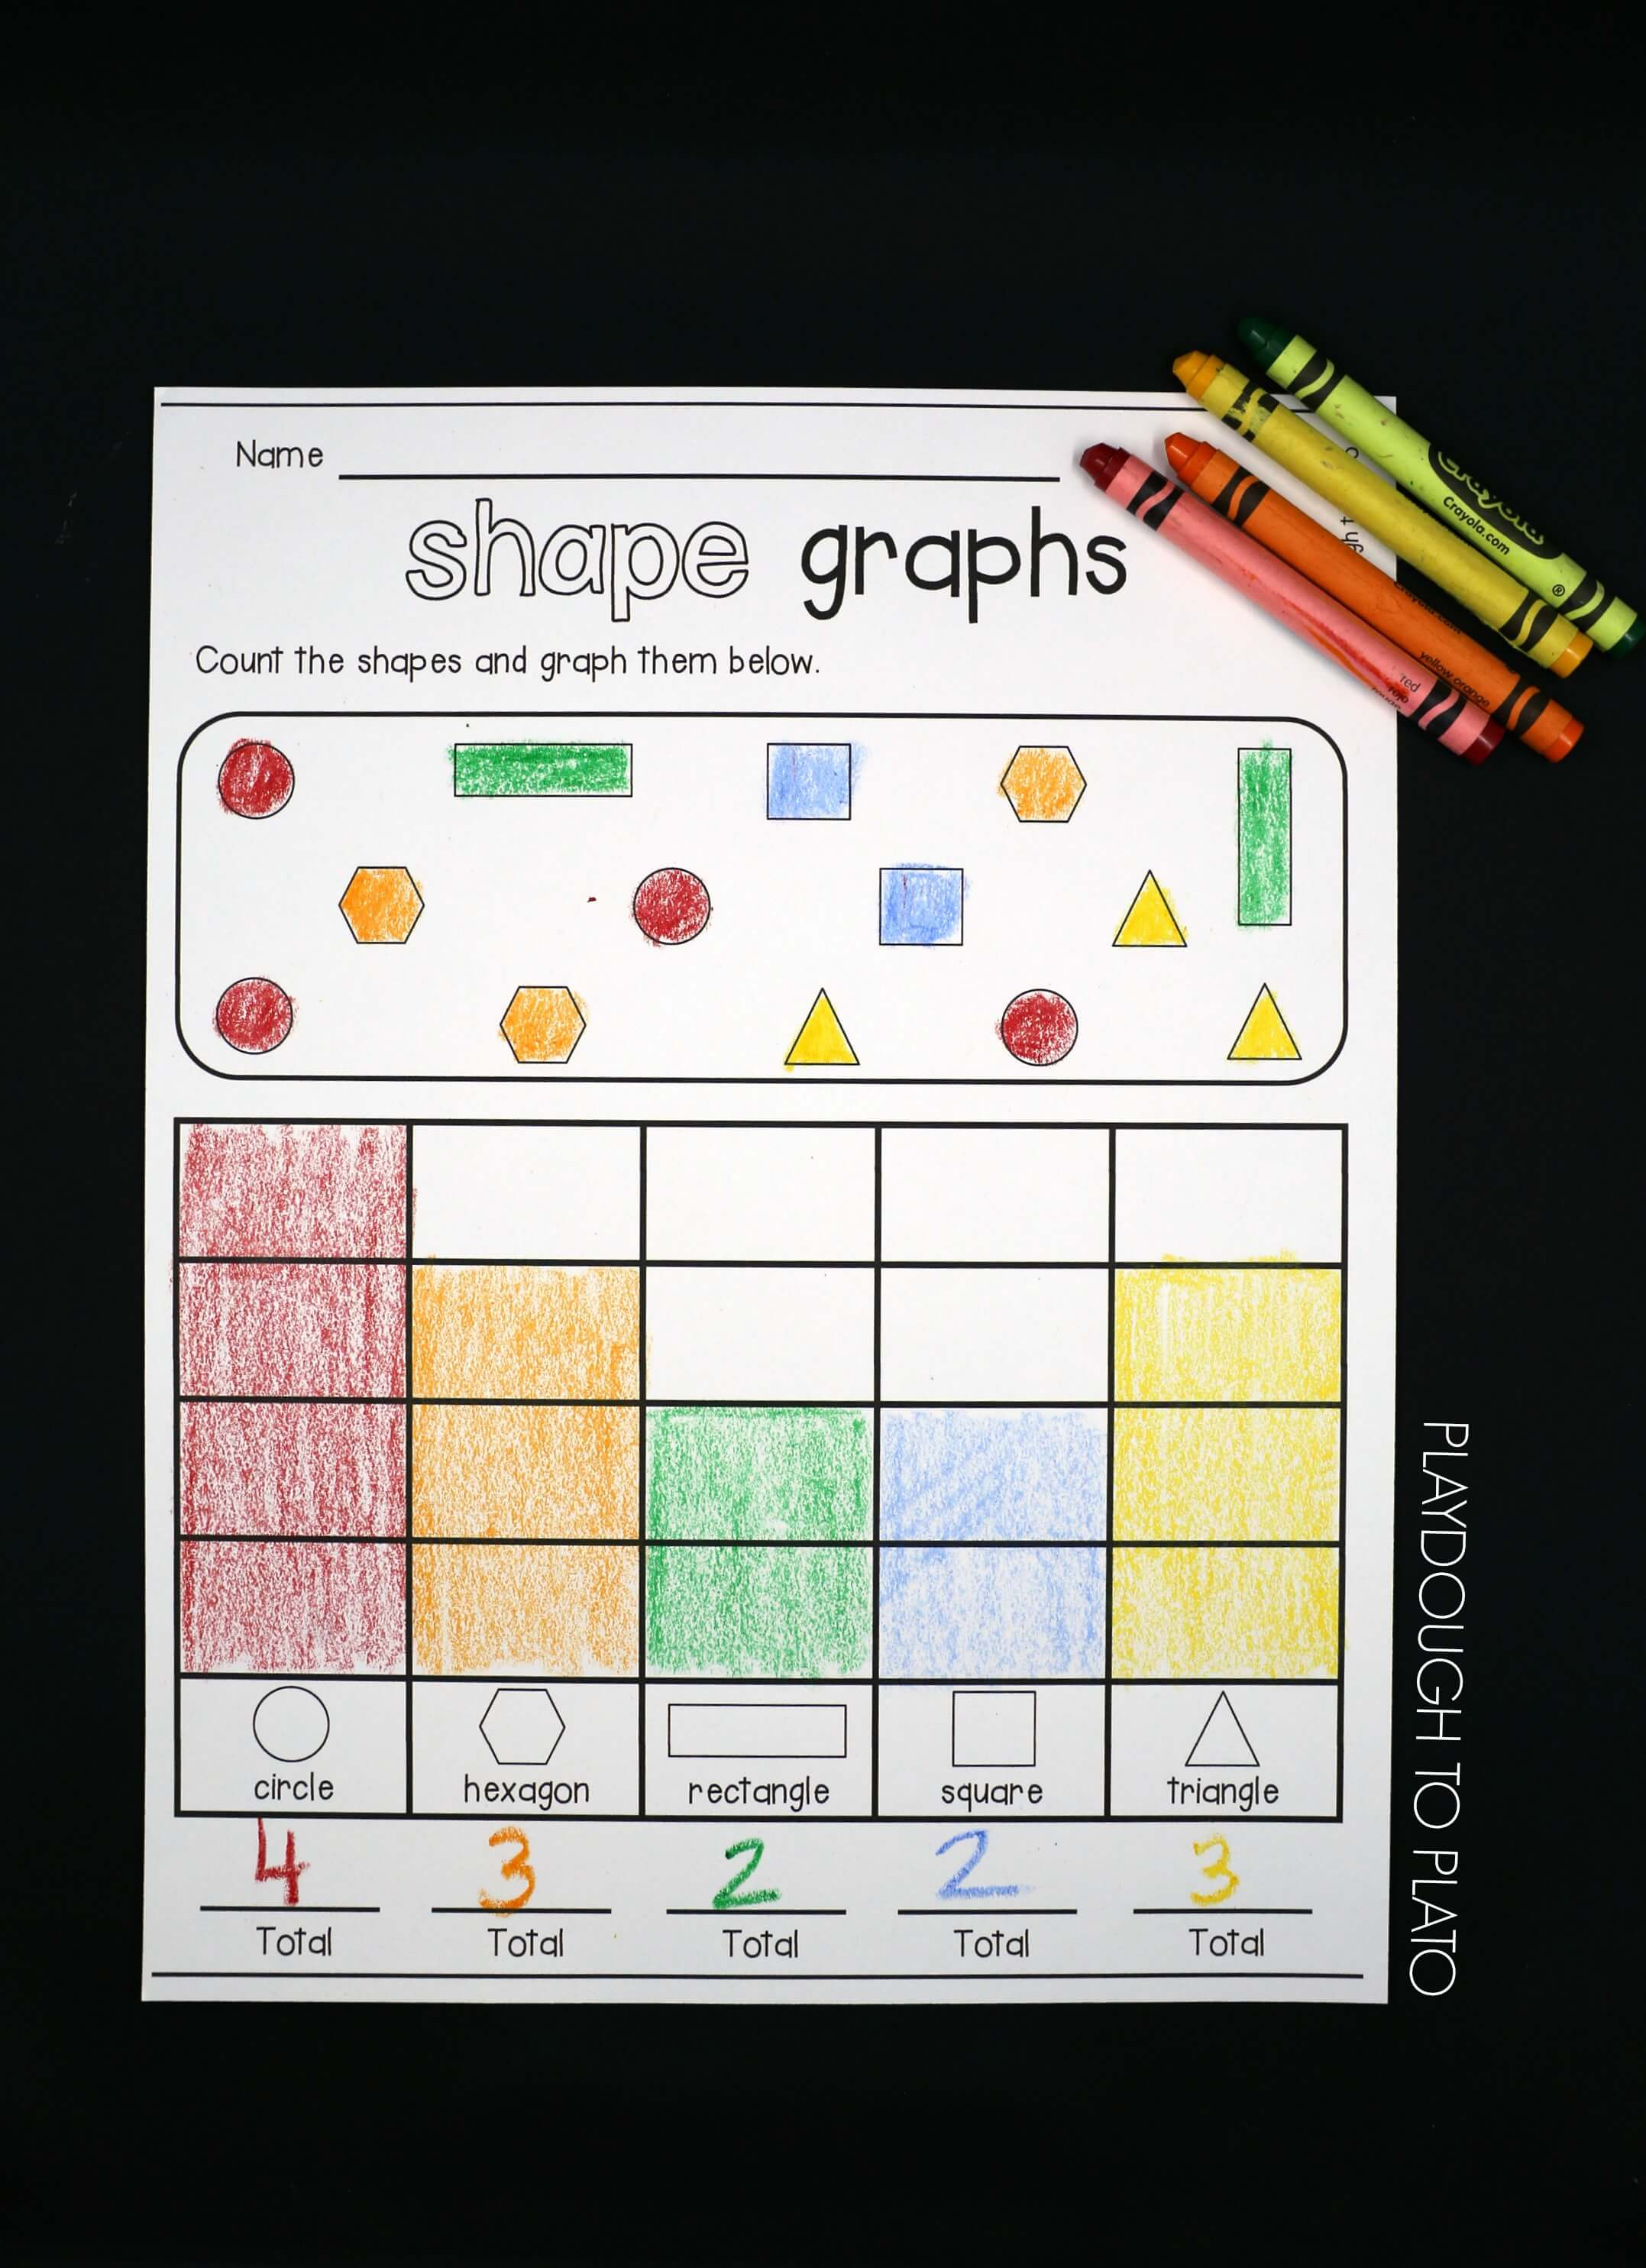 E Bd Fe E Cccf Ff C additionally F C Fa C Cfb Fca Da Ea F Free Printable Worksheets Printable Templates further Matching Object Large also Learning About Shapes D And D Shapes Learning Activities moreover Identify And Color The Shape. on 3d shapes cut and paste worksheets